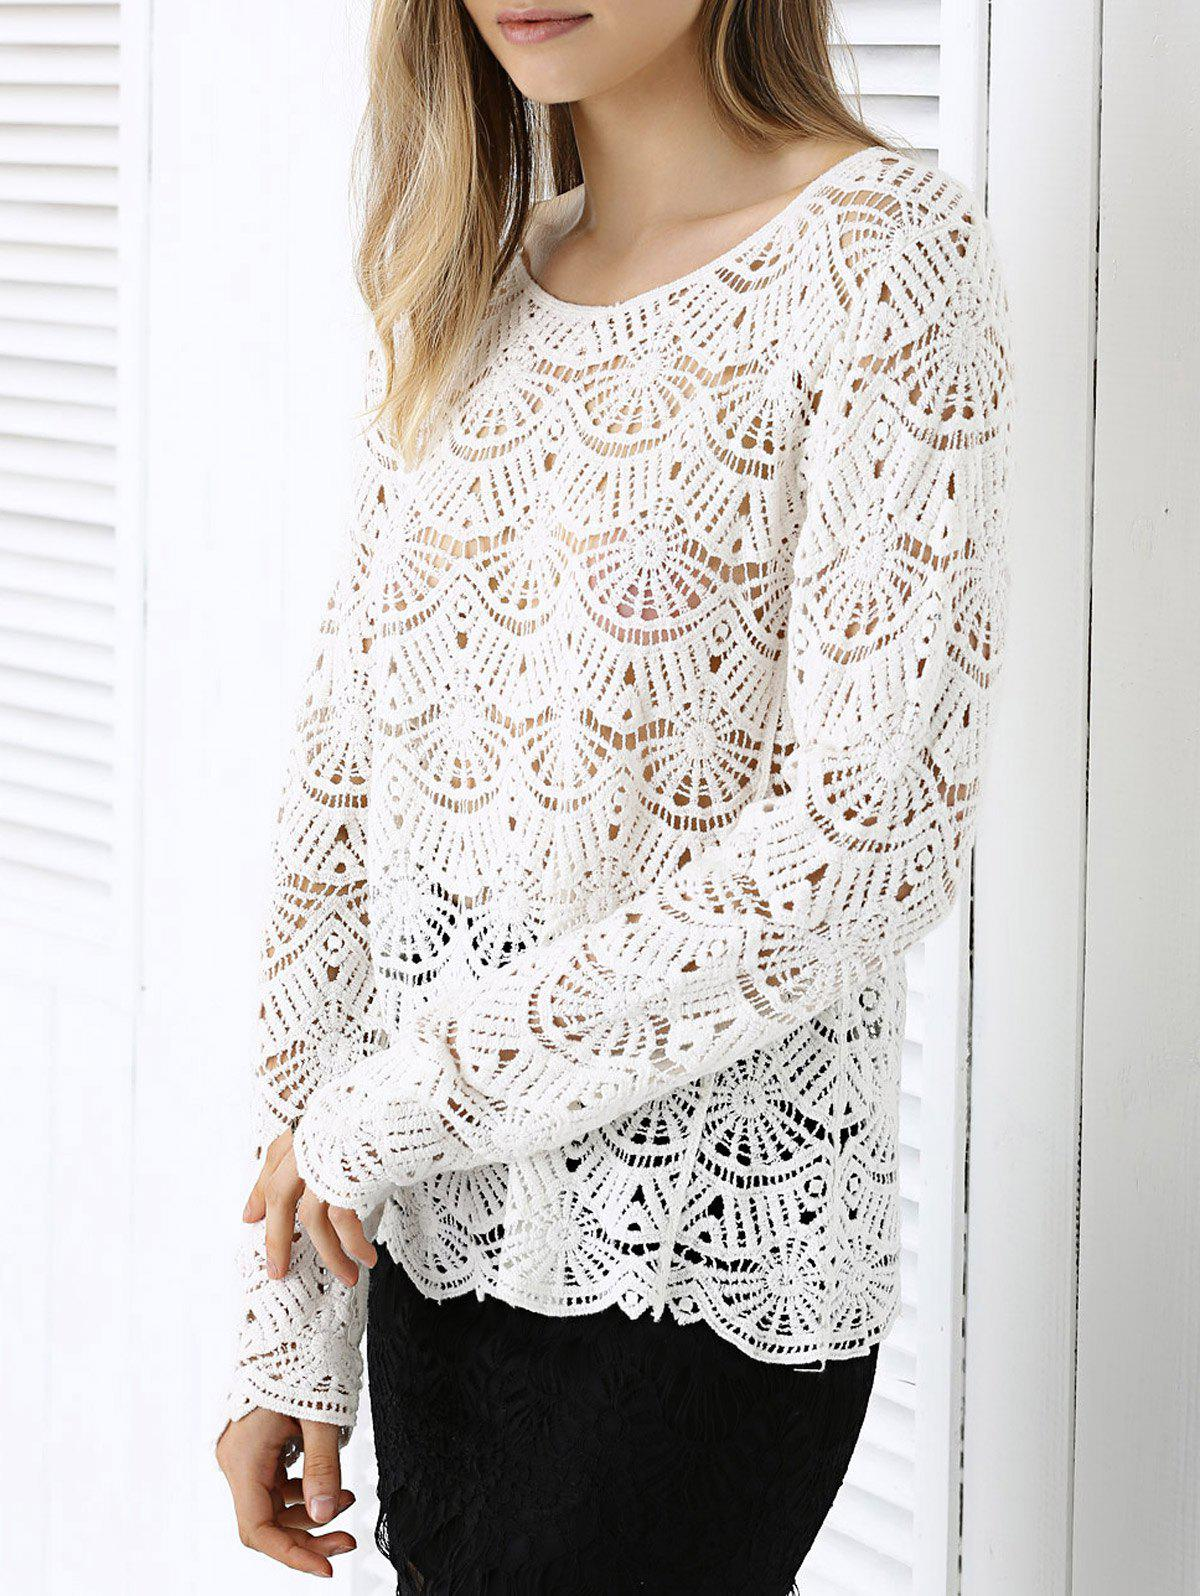 Chic Fanshaped Lace Crochet Trim See-Through Spliced Blouse - ONE SIZE WHITE